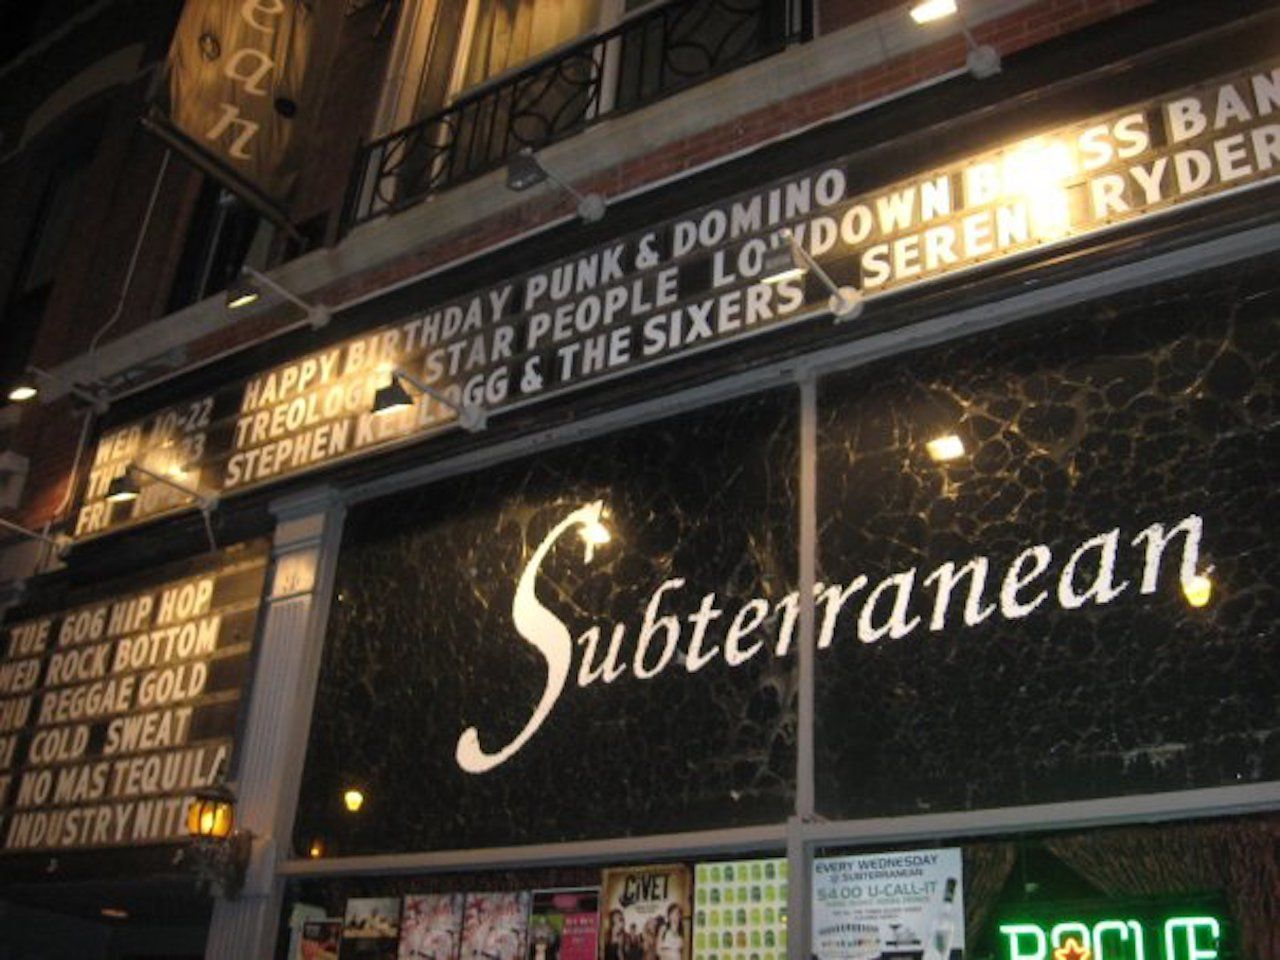 Front of the Subterranean music venue in Chicago